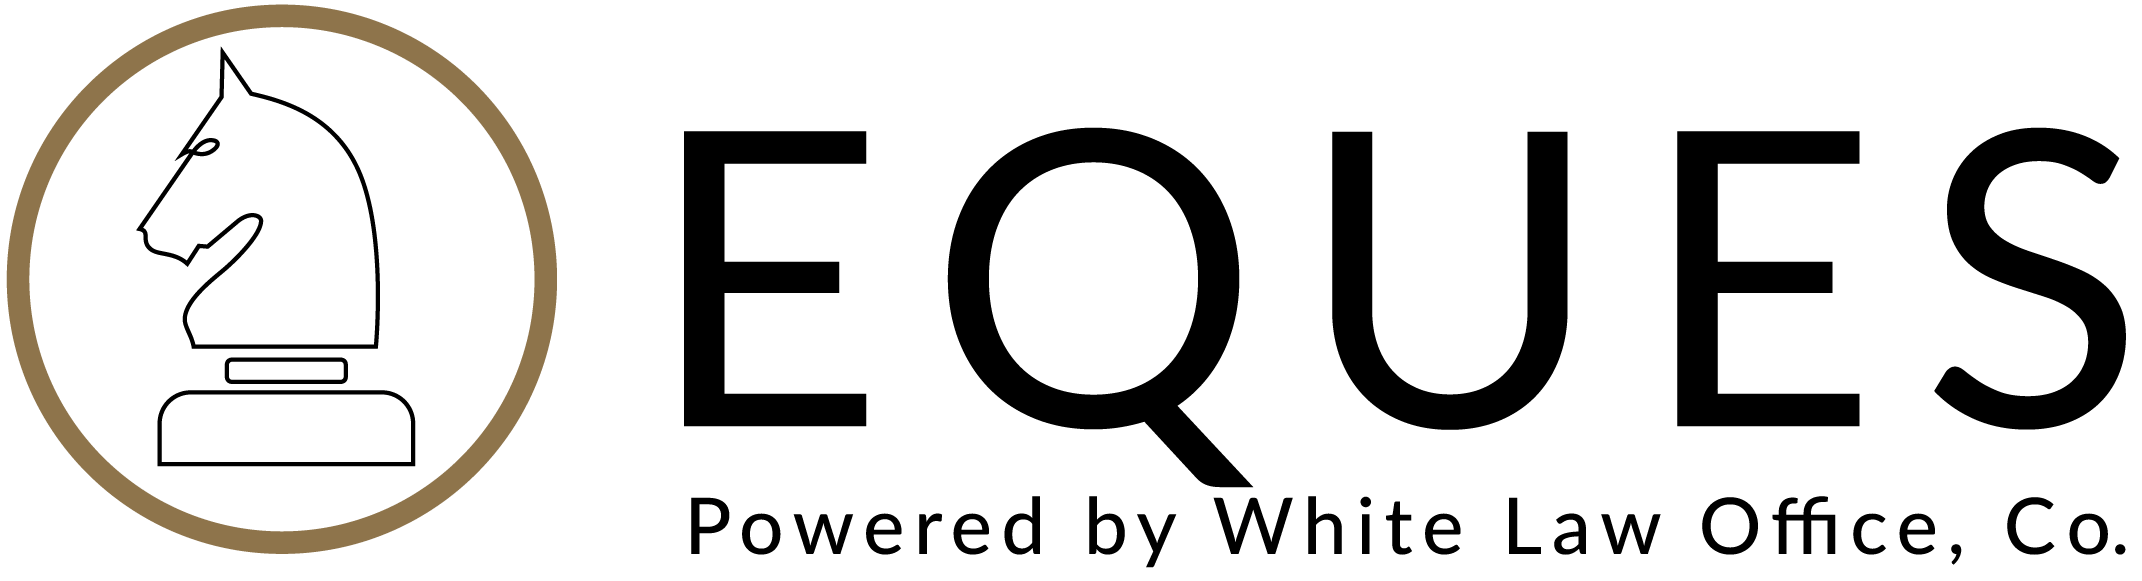 Eques - Powered by White Law Office, Co